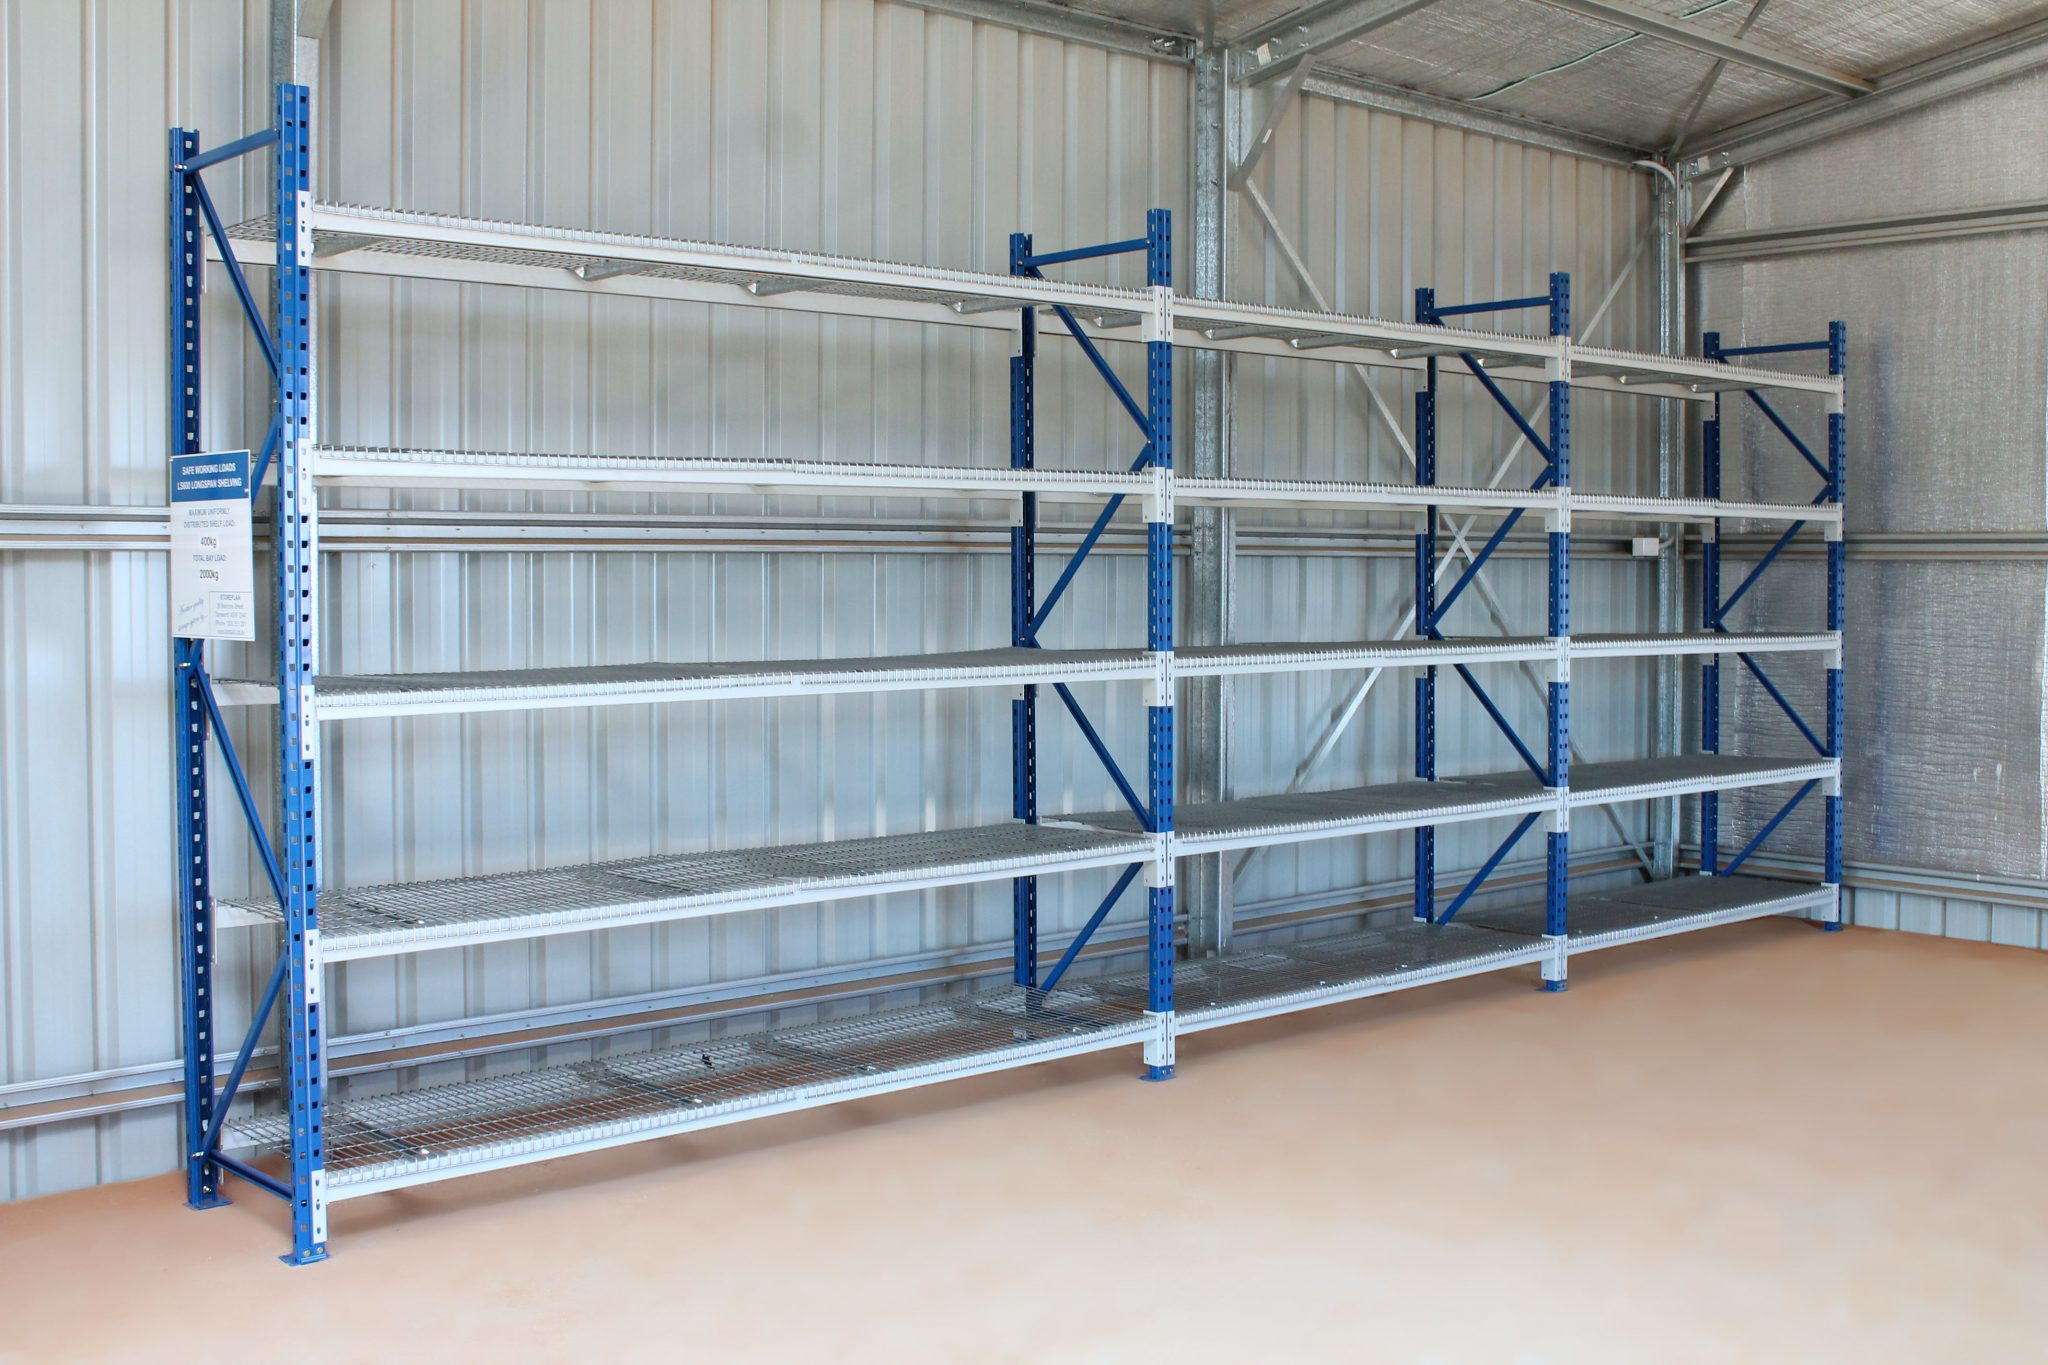 Longspan Shelving Supplier In Australia Storeplan